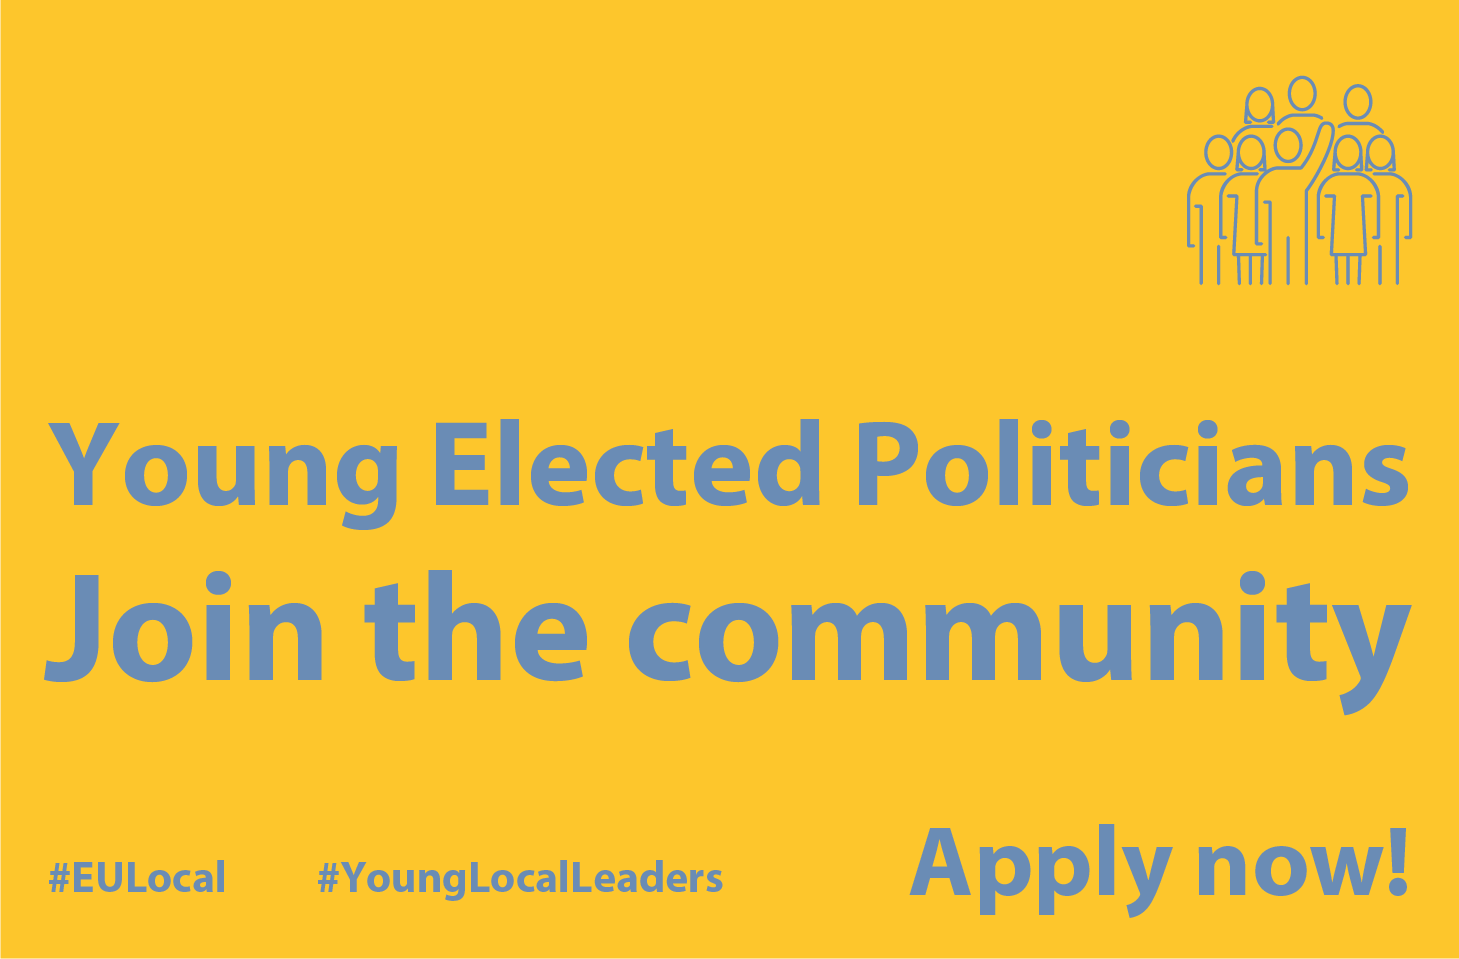 Young Elected Politician Programme 2021: Application Period is Open